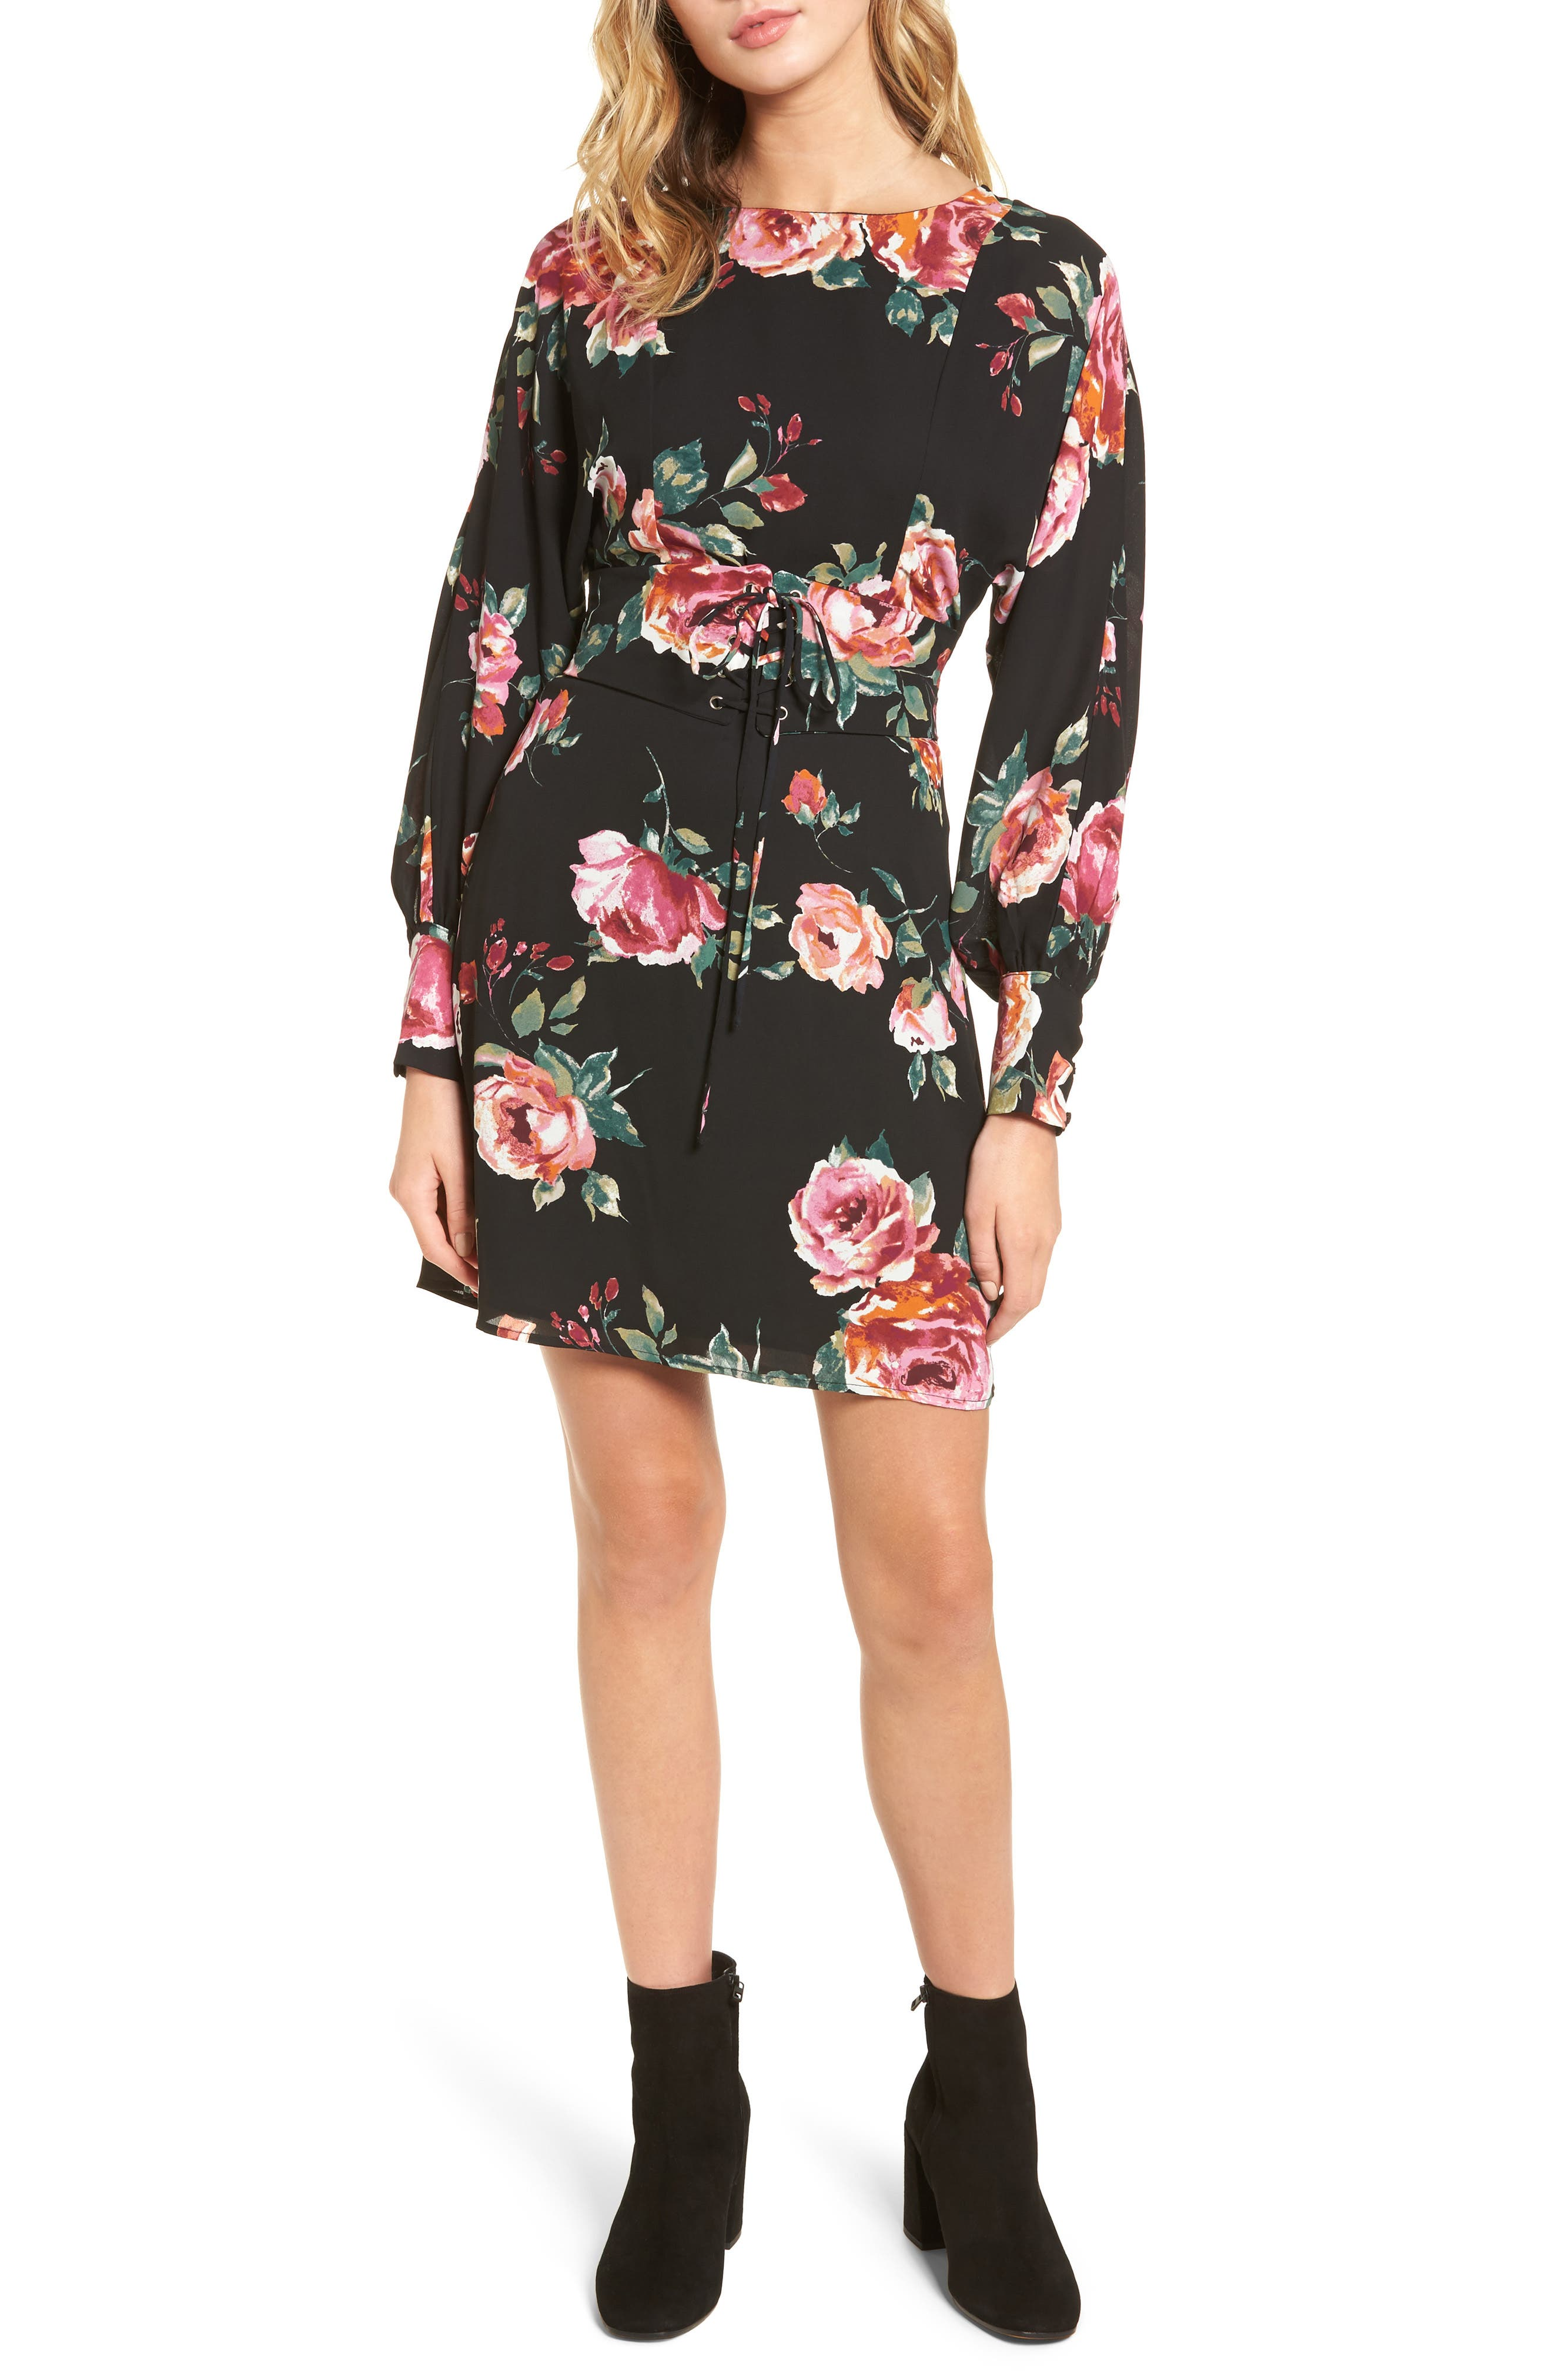 Everly Floral Print Corset Dress